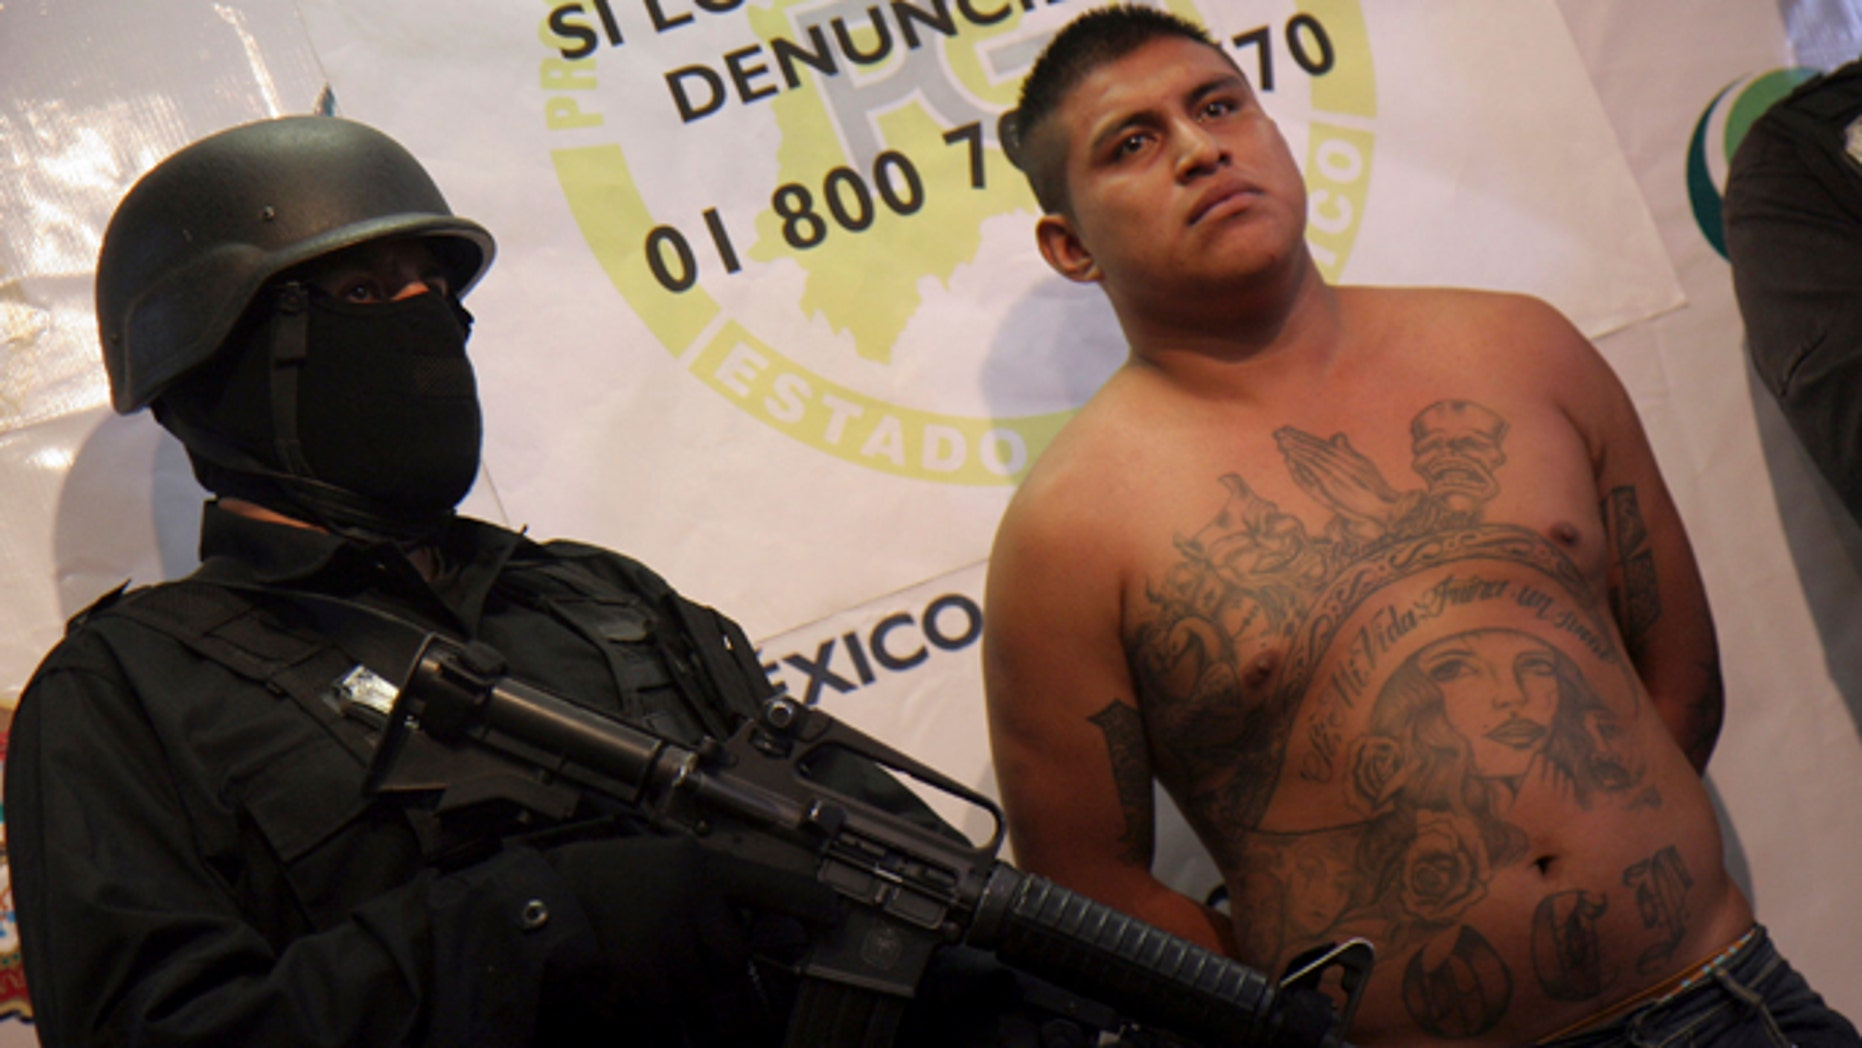 Feb. 17, 2011: A Mexico state policeman stands next to Juan Carlos Vasconcelos, 24, during a presentation to the press in Toluca, Mexico.